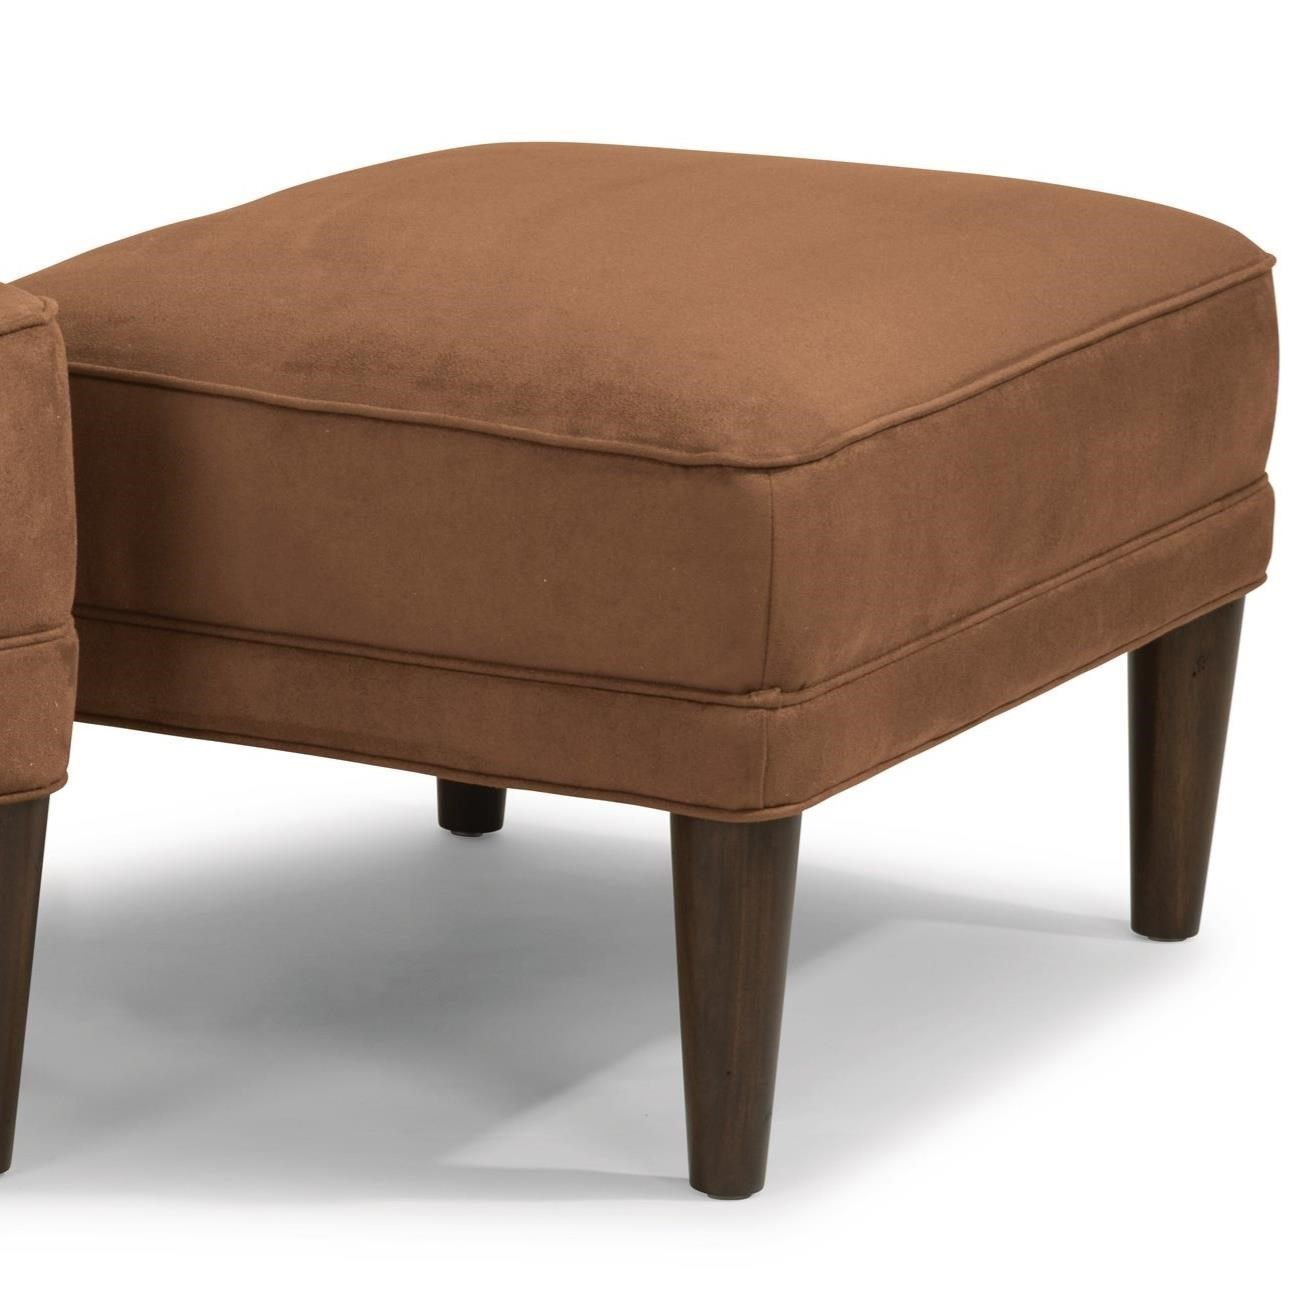 Mid Century Modern Ottoman By Flexsteel. Home Living Room Furniture Ottomans  Flexsteel Etta Ottoman. Flexsteel EttaOttoman; Flexsteel EttaOttoman